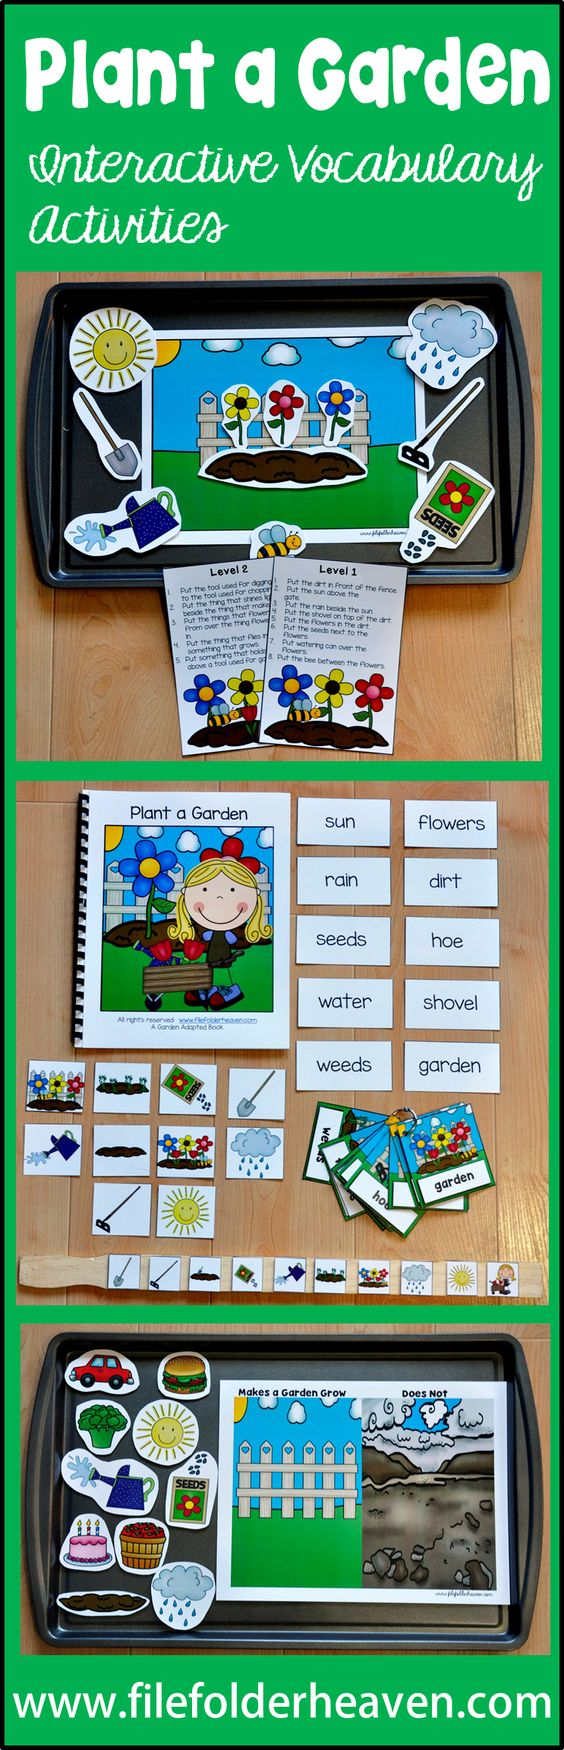 """""""Plant a garden. Watch it grow. Grab the shovel! Grab the hoe!""""  The """"Plant a Garden"""" Adapted Books Unit is a spring themed unit that focuses on garden vocabulary. This unit includes 2 adapted books, 3 file folder games, 2 cookie sheet activities, 1 clothespin task and 1 set of vocabulary handwriting sheets.  This unit has just been UPDATED!!!  (1/2016)  In addition to all of the above activities, this unit now includes an updated adapted book and 4 new vocabulary extension activities."""